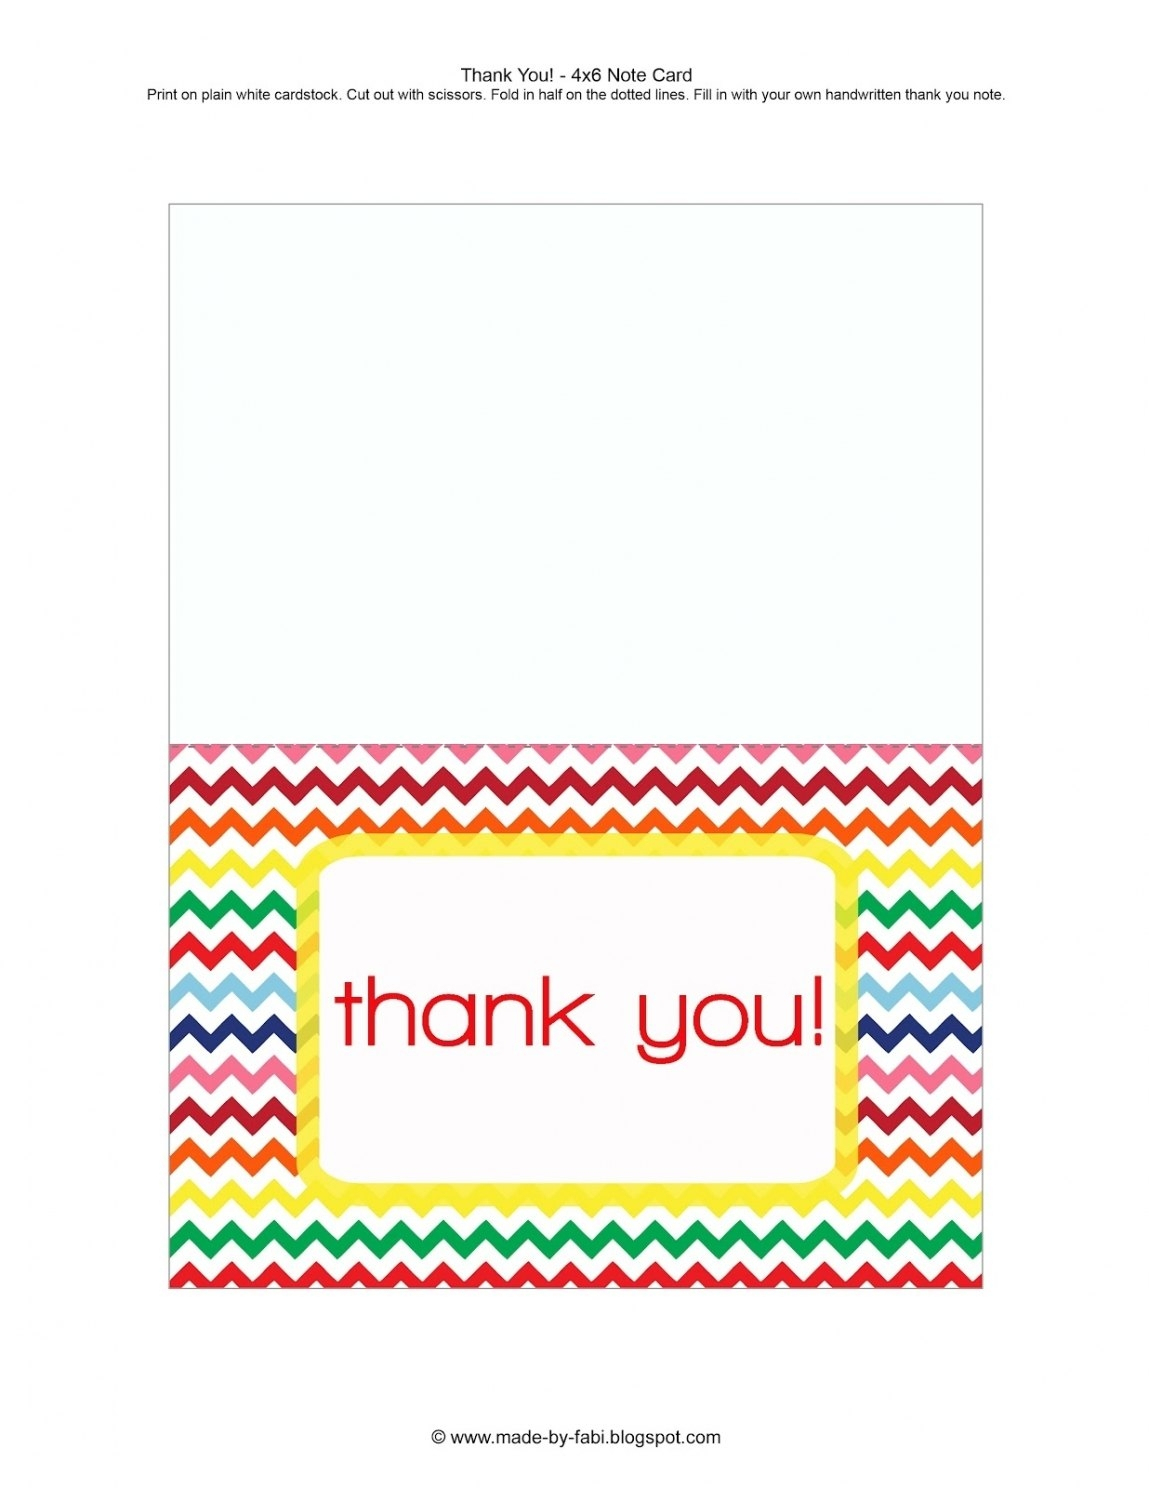 Free Printable Thank You Card Template Word | Penaime - Thank You Card Free Printable Template